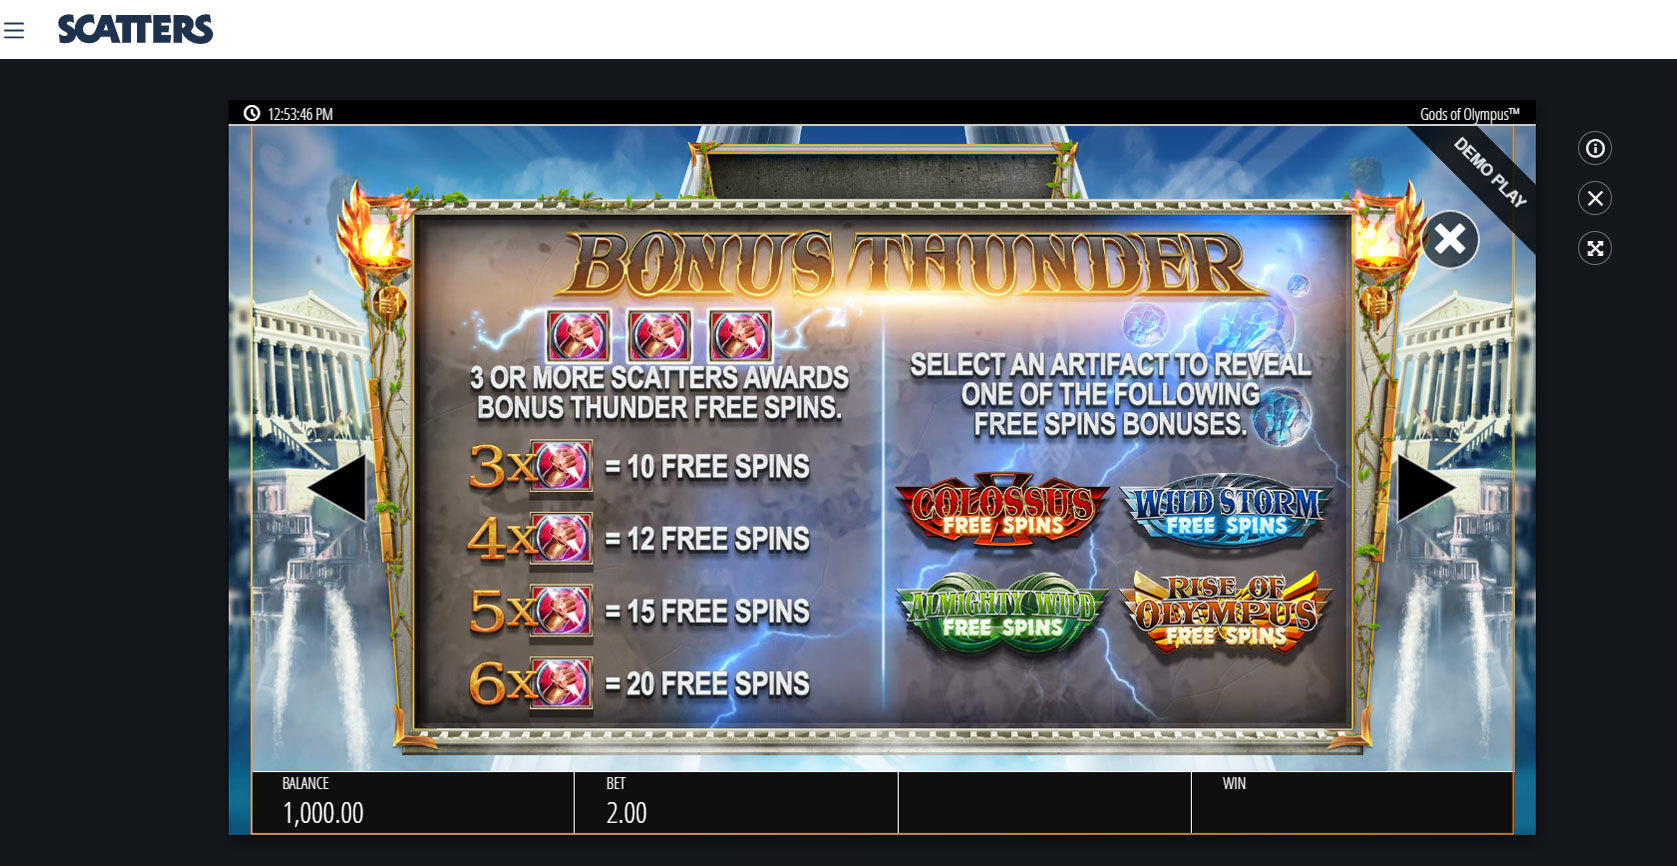 Megaways Slots: Gods of Olympia - Scatters Online Casino